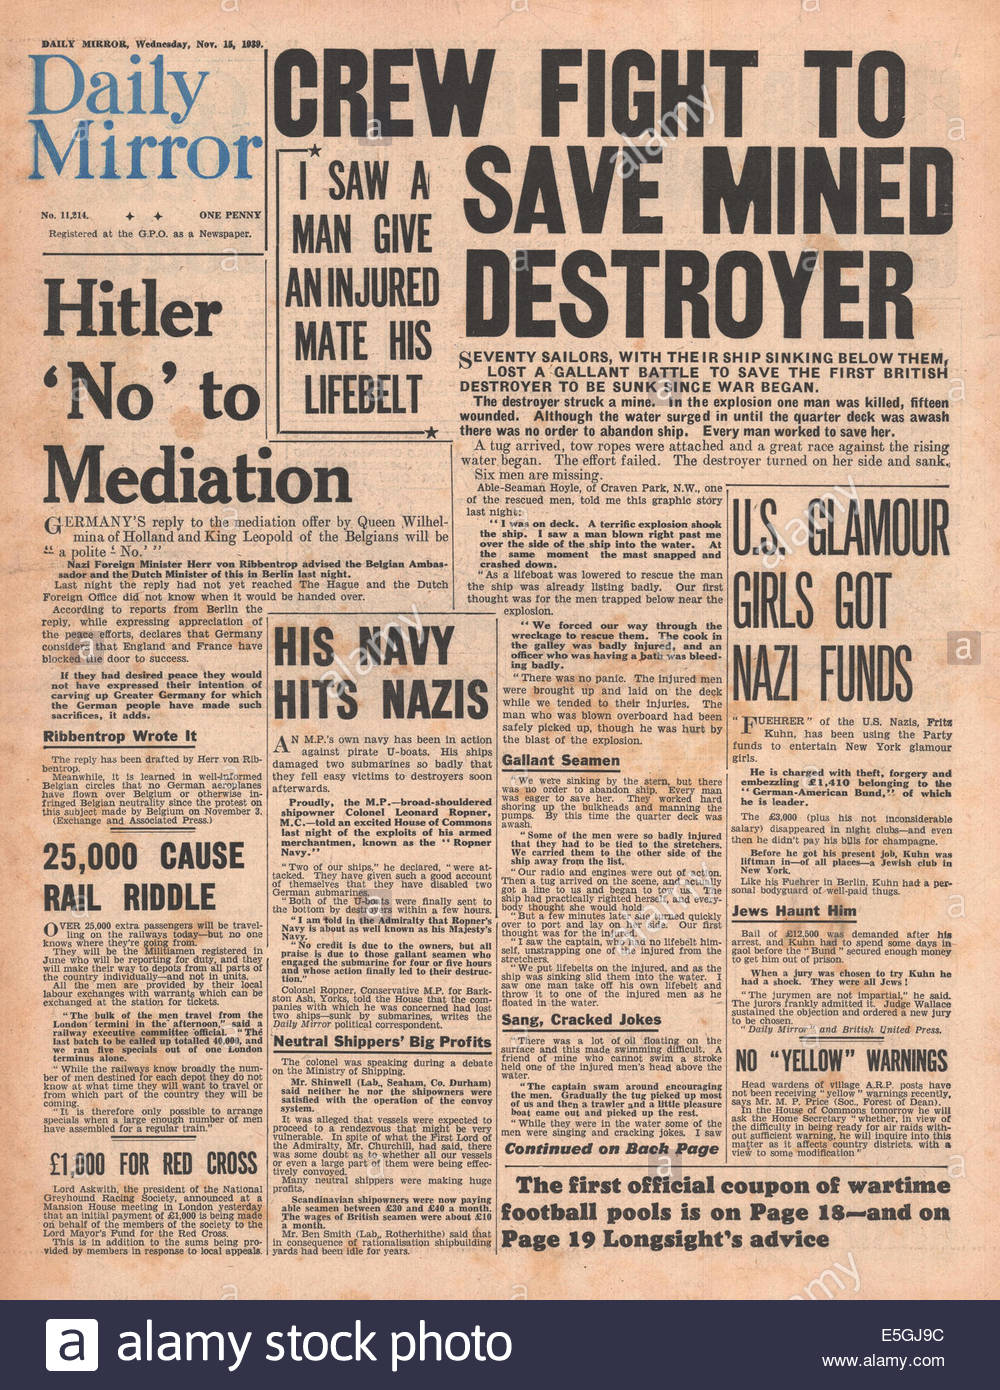 1939 Daily Mirror front page reporting Adolf Hitler rejects